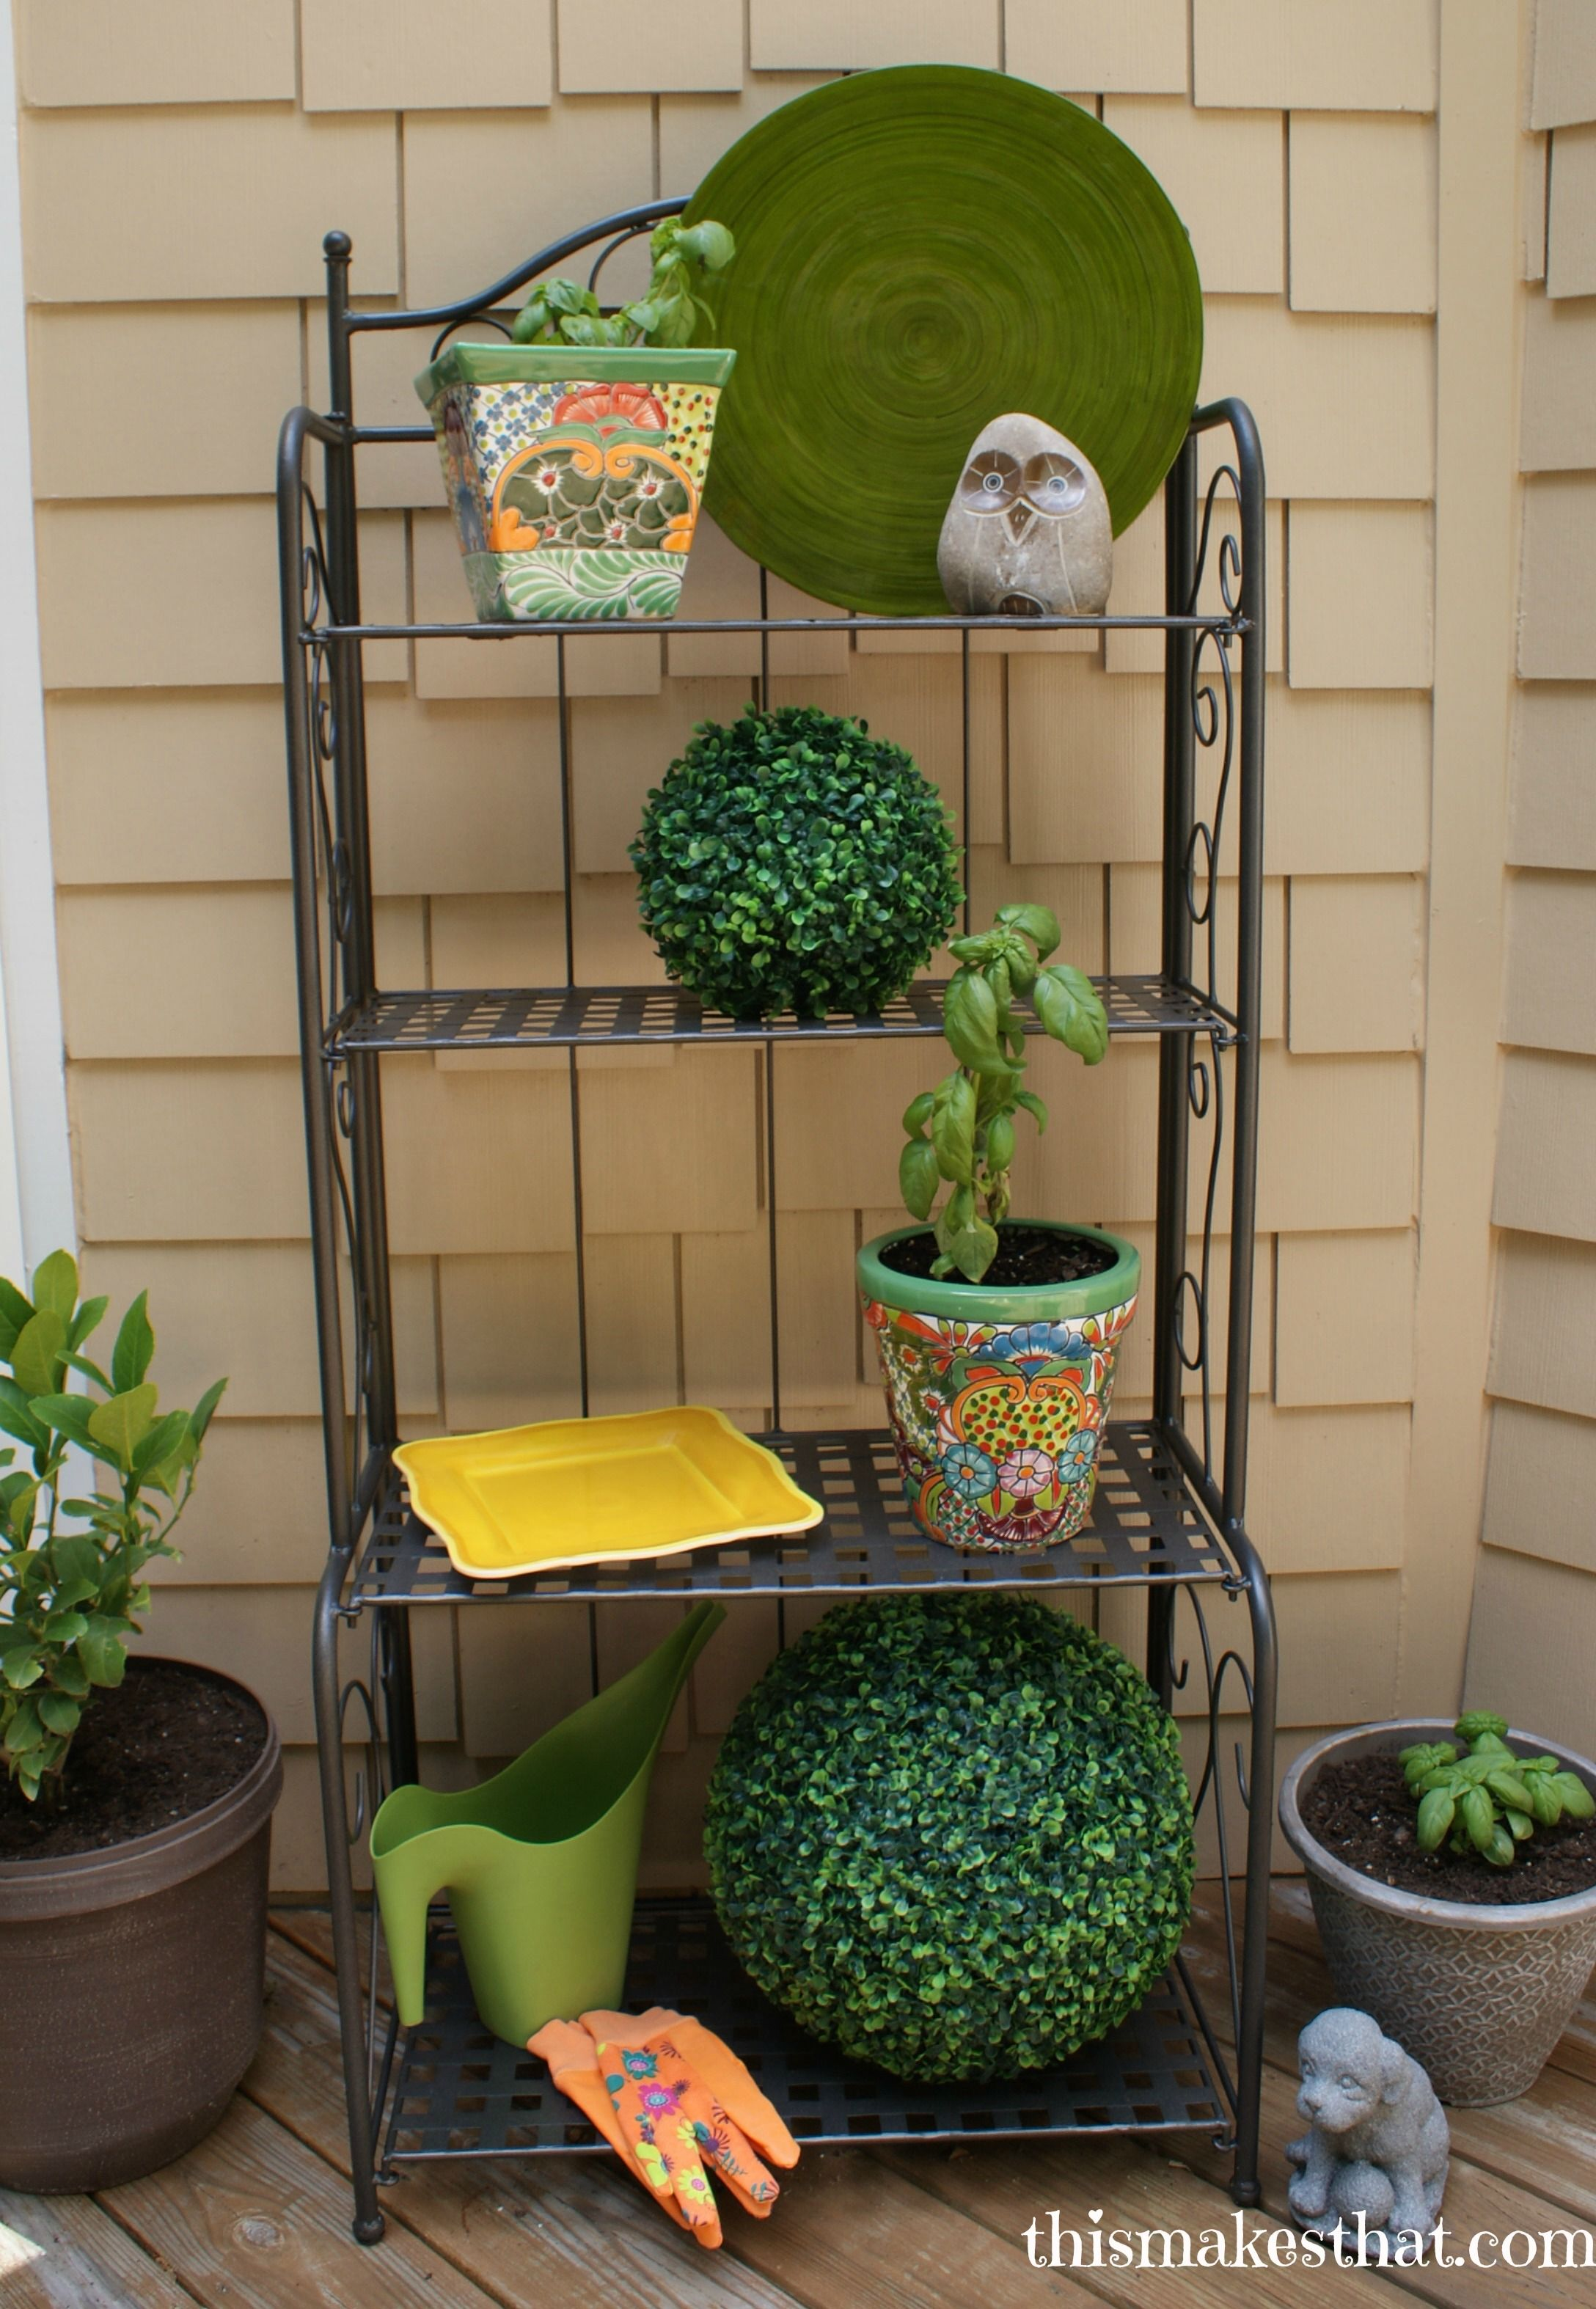 Ideas On How To Decorate An Outdoor Baker S Rack Outdoor Bakers